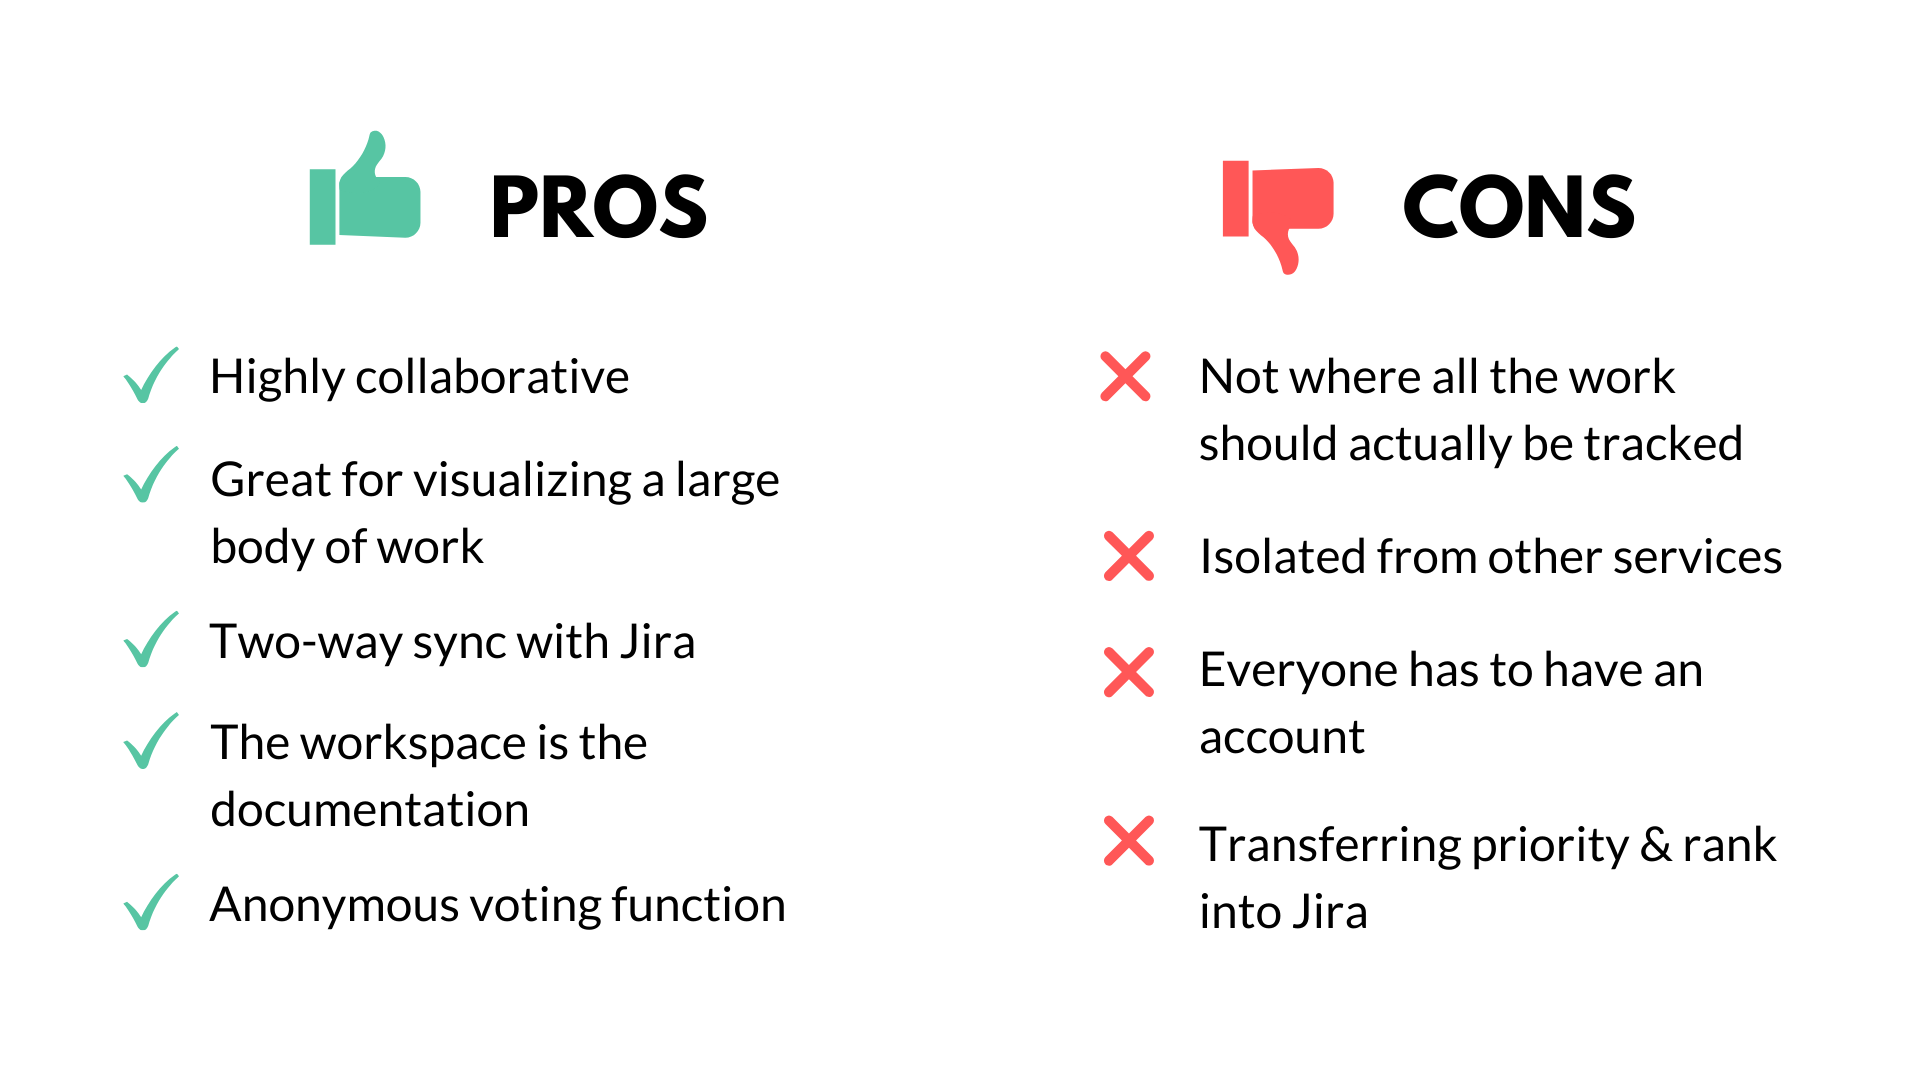 pros and cons chart of Miro tool, black green and red